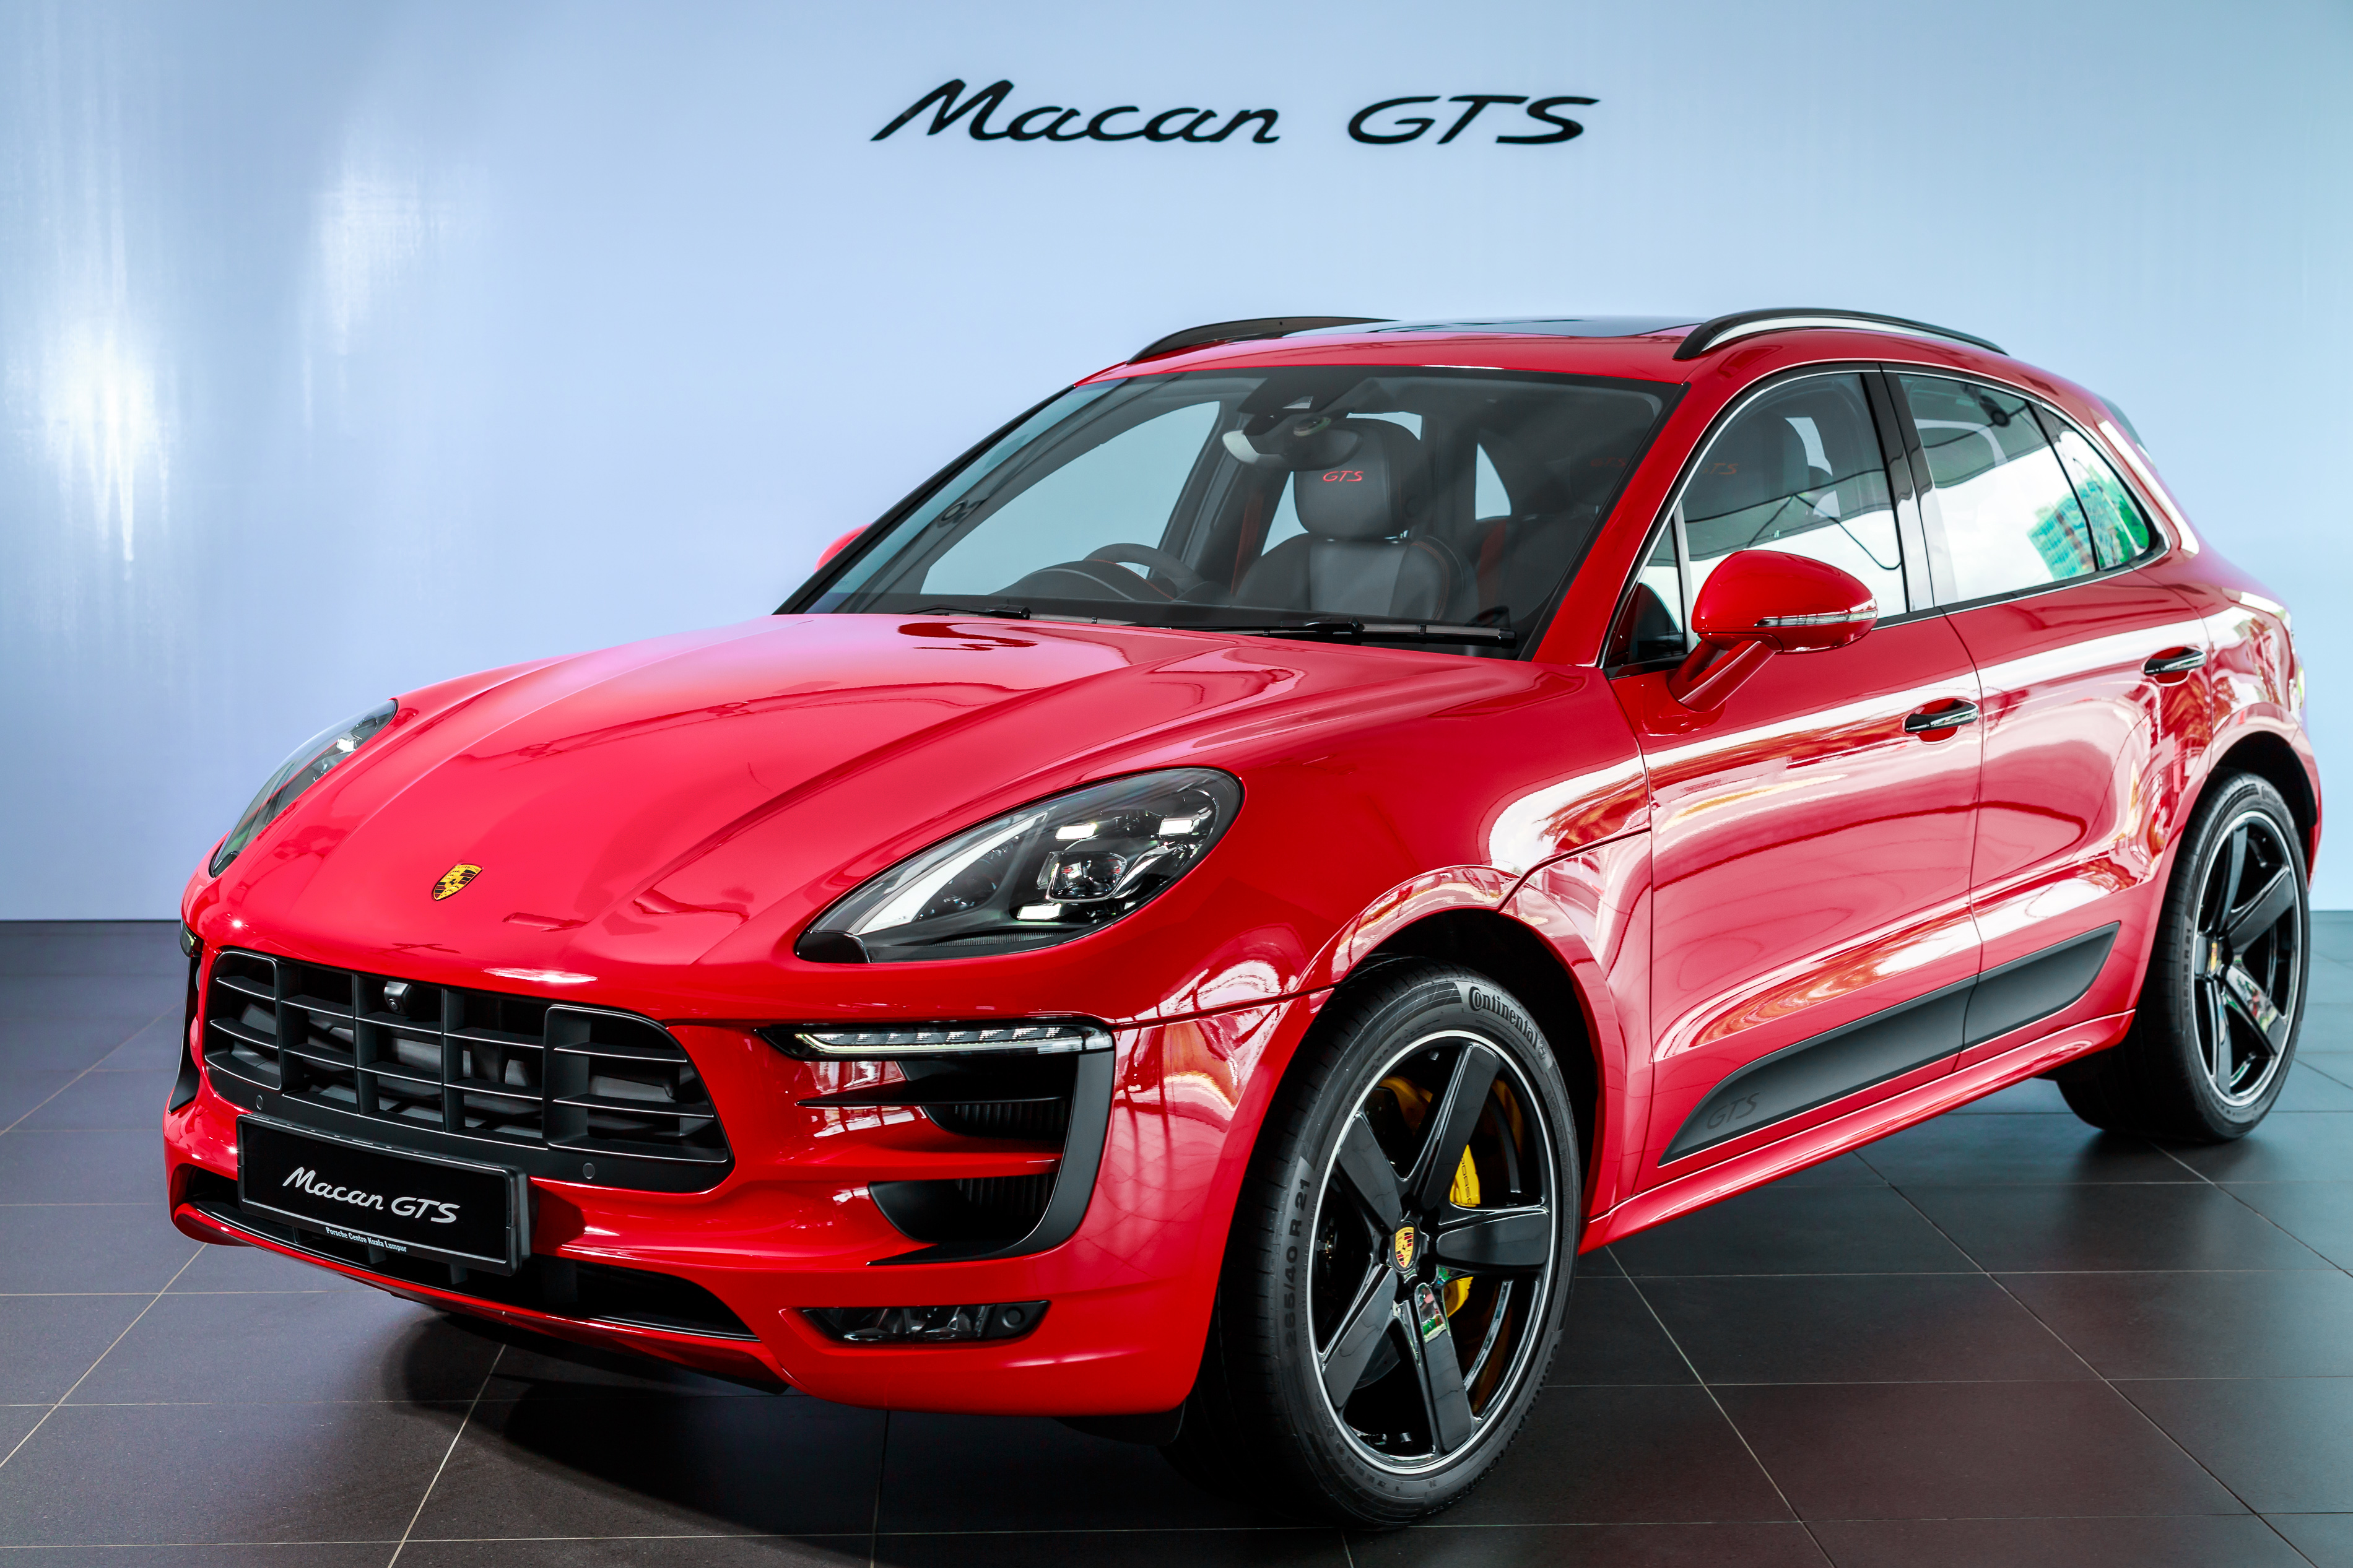 Porsche Macan Gts Launched In Malaysia Rm710k Image 509728